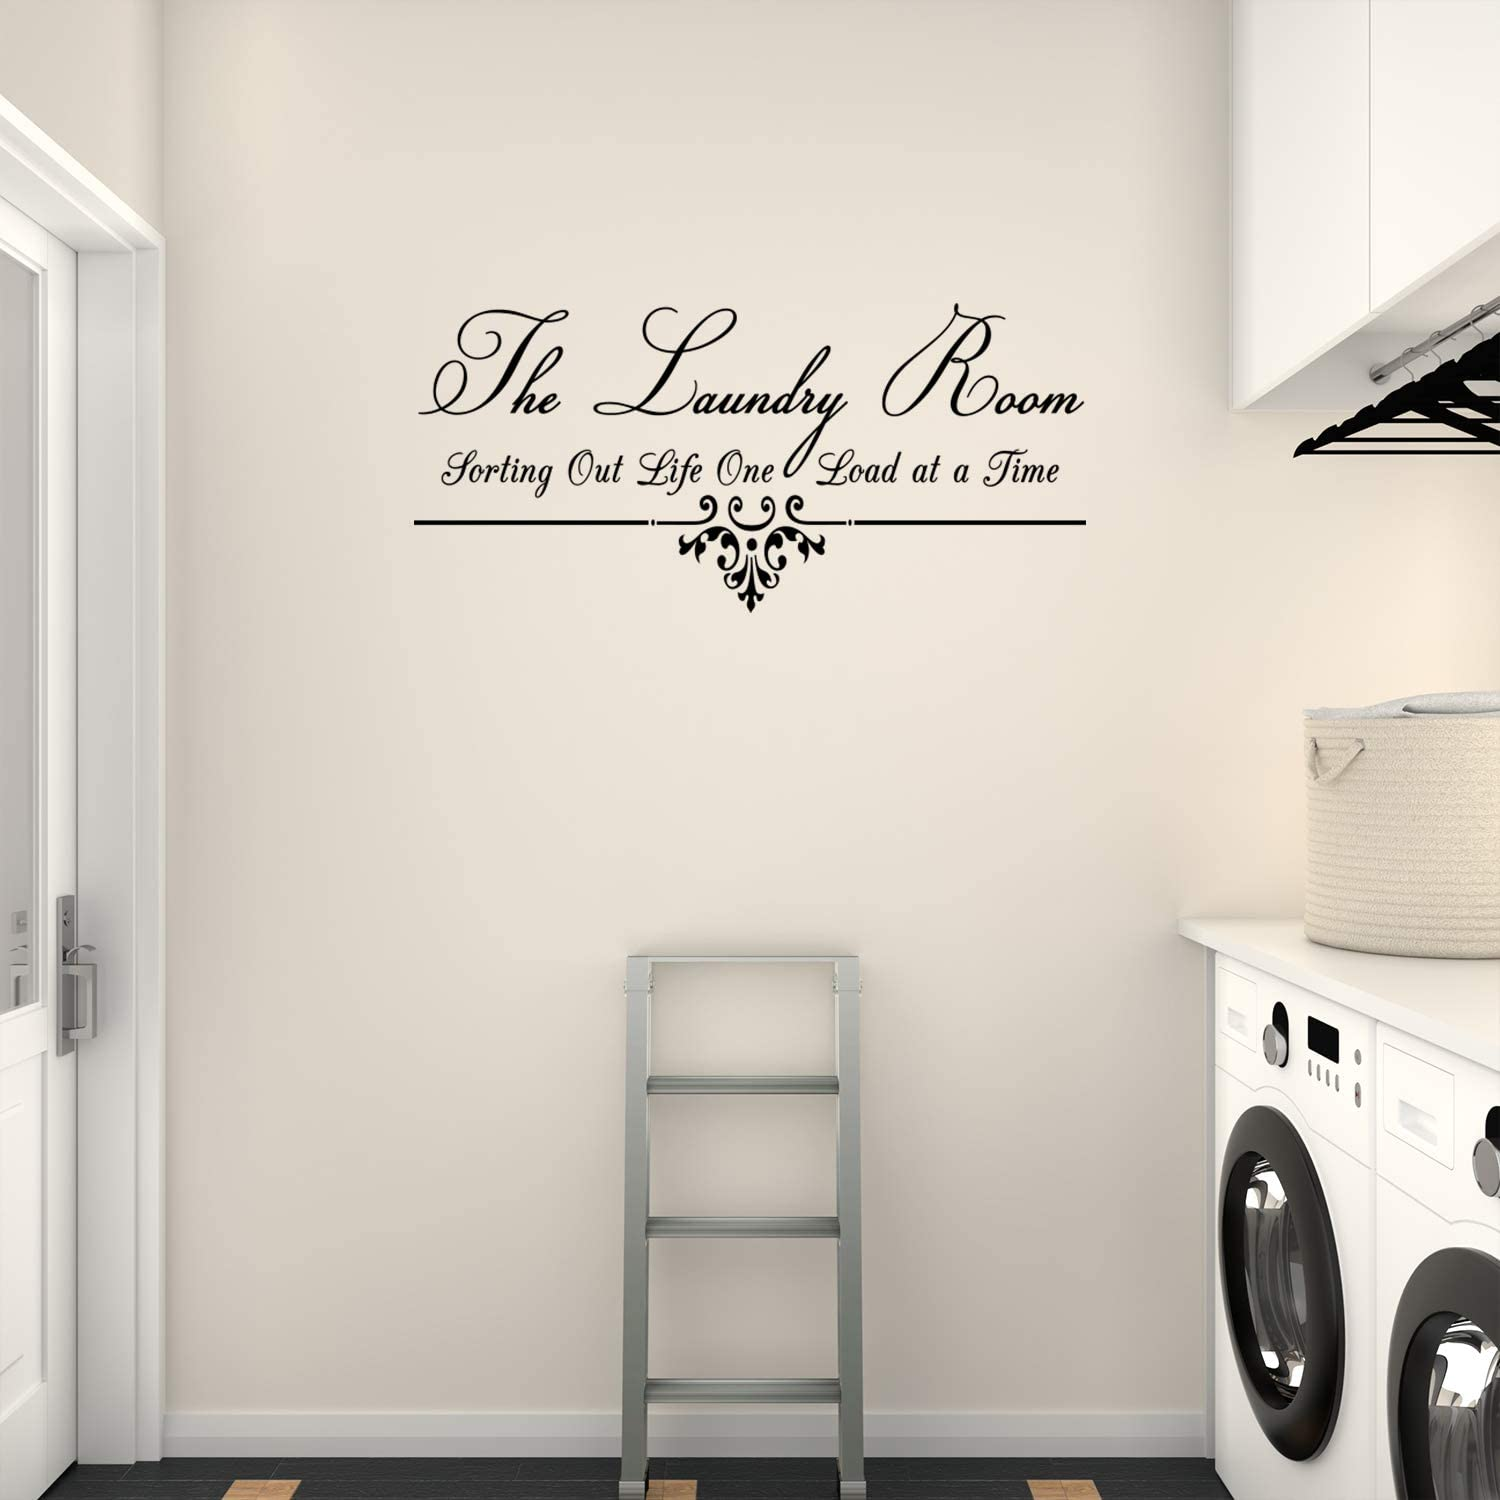 Empresal Laundry Room Wall Decal Sorting Out Life Vinyl Words Stickers Art Home Decor Signs Sticker Removable Lettering